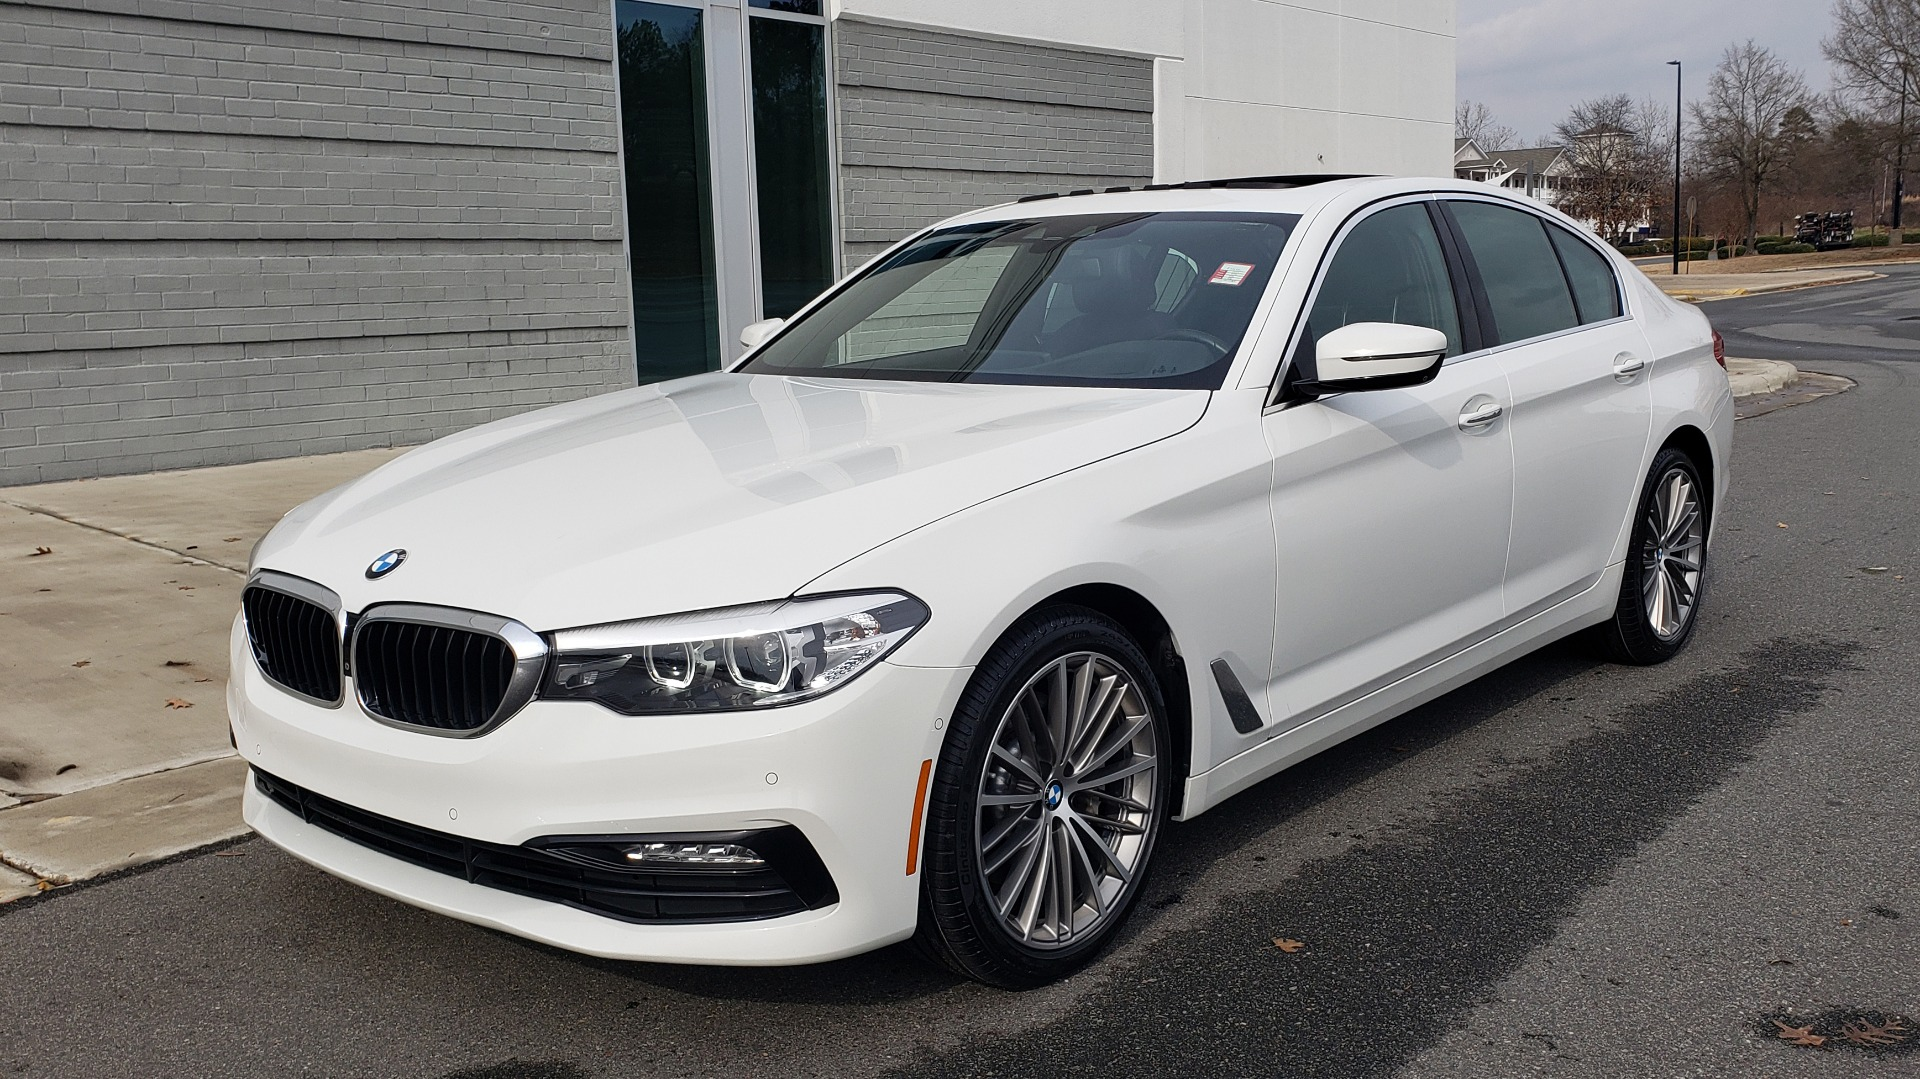 Used 2017 BMW 5 SERIES 530I PREMIUM / DRVR ASST PLUS / NAV / HUD / SUNROOF / REARVIEW for sale Sold at Formula Imports in Charlotte NC 28227 4